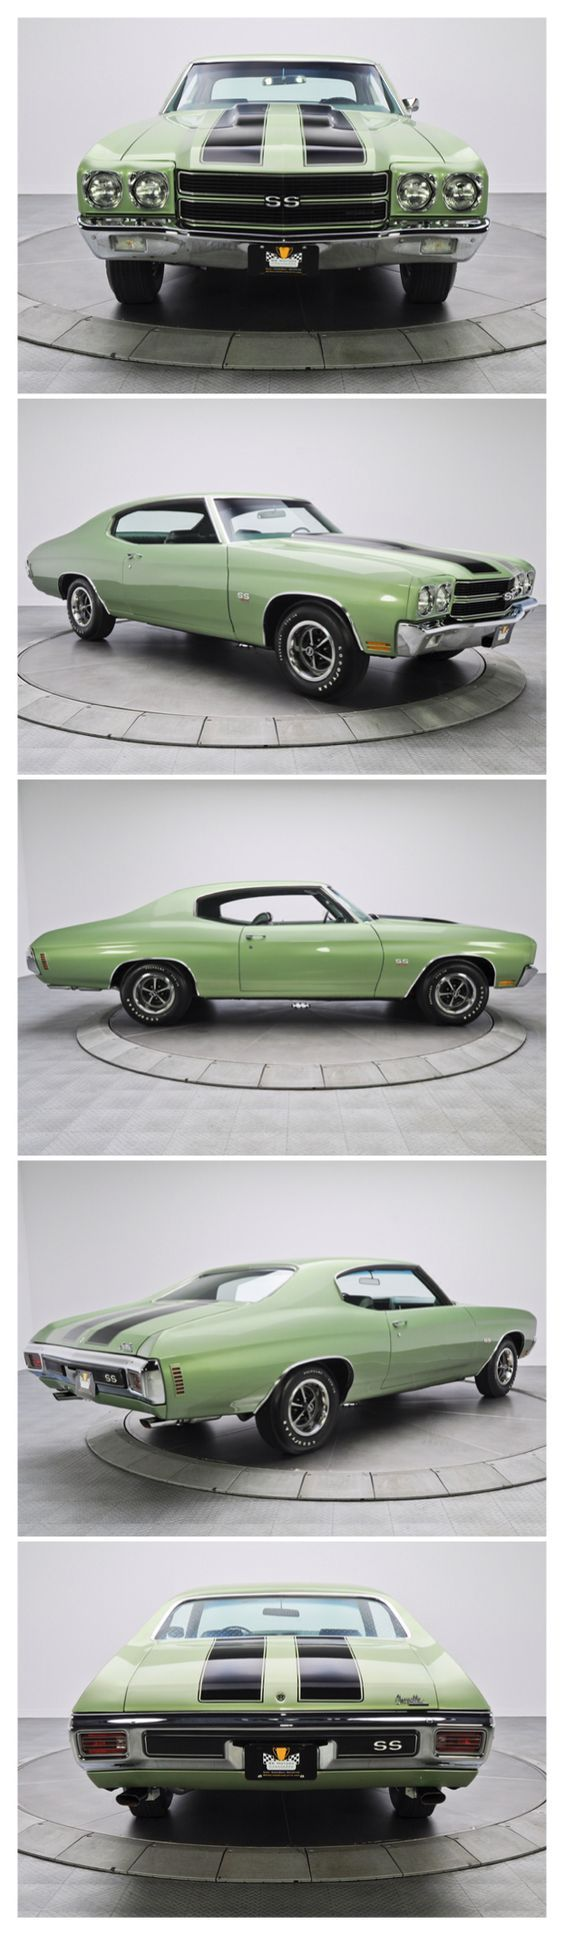 Chevelle blue metallic paint car pictures car canyon - 2018 Chevy Chevelle Ss Redesign And Price Stuff To Buy Pinterest Chevy Chevelle Ss Chevelle Ss And Chevy